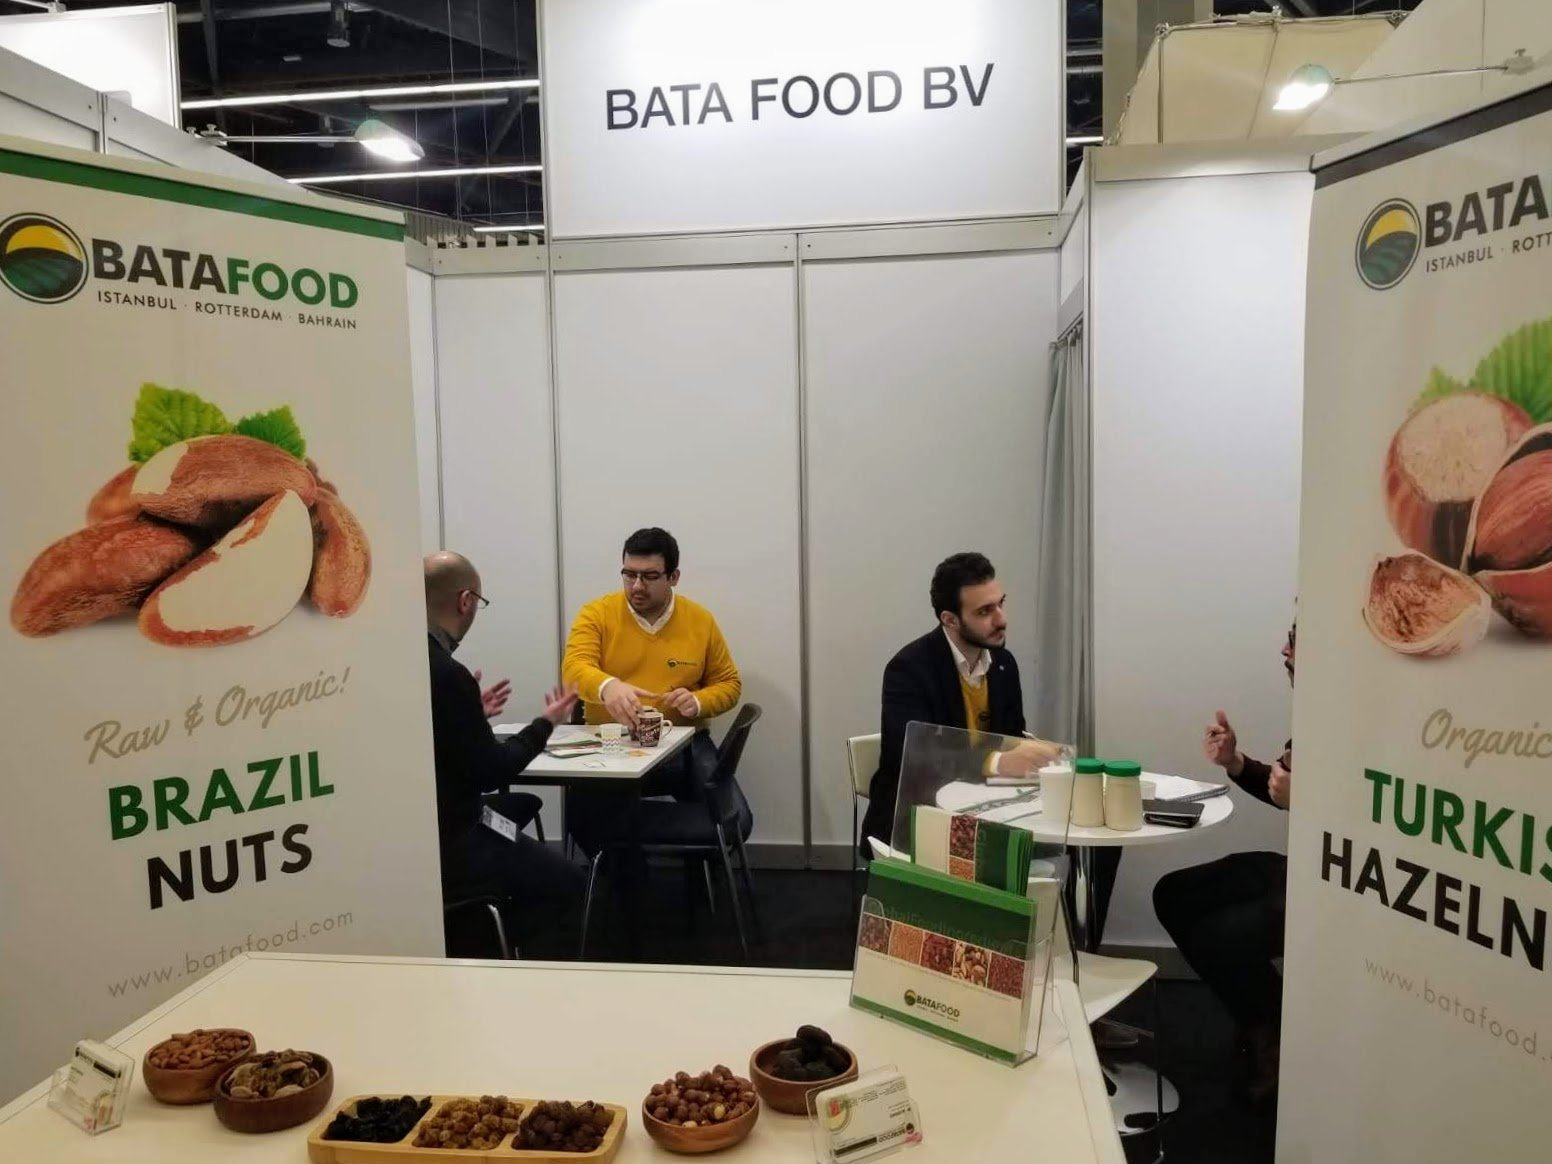 BATA FOOD BV Biofach 2019 Organic Dried Fruits Nuts Seeds Supplier